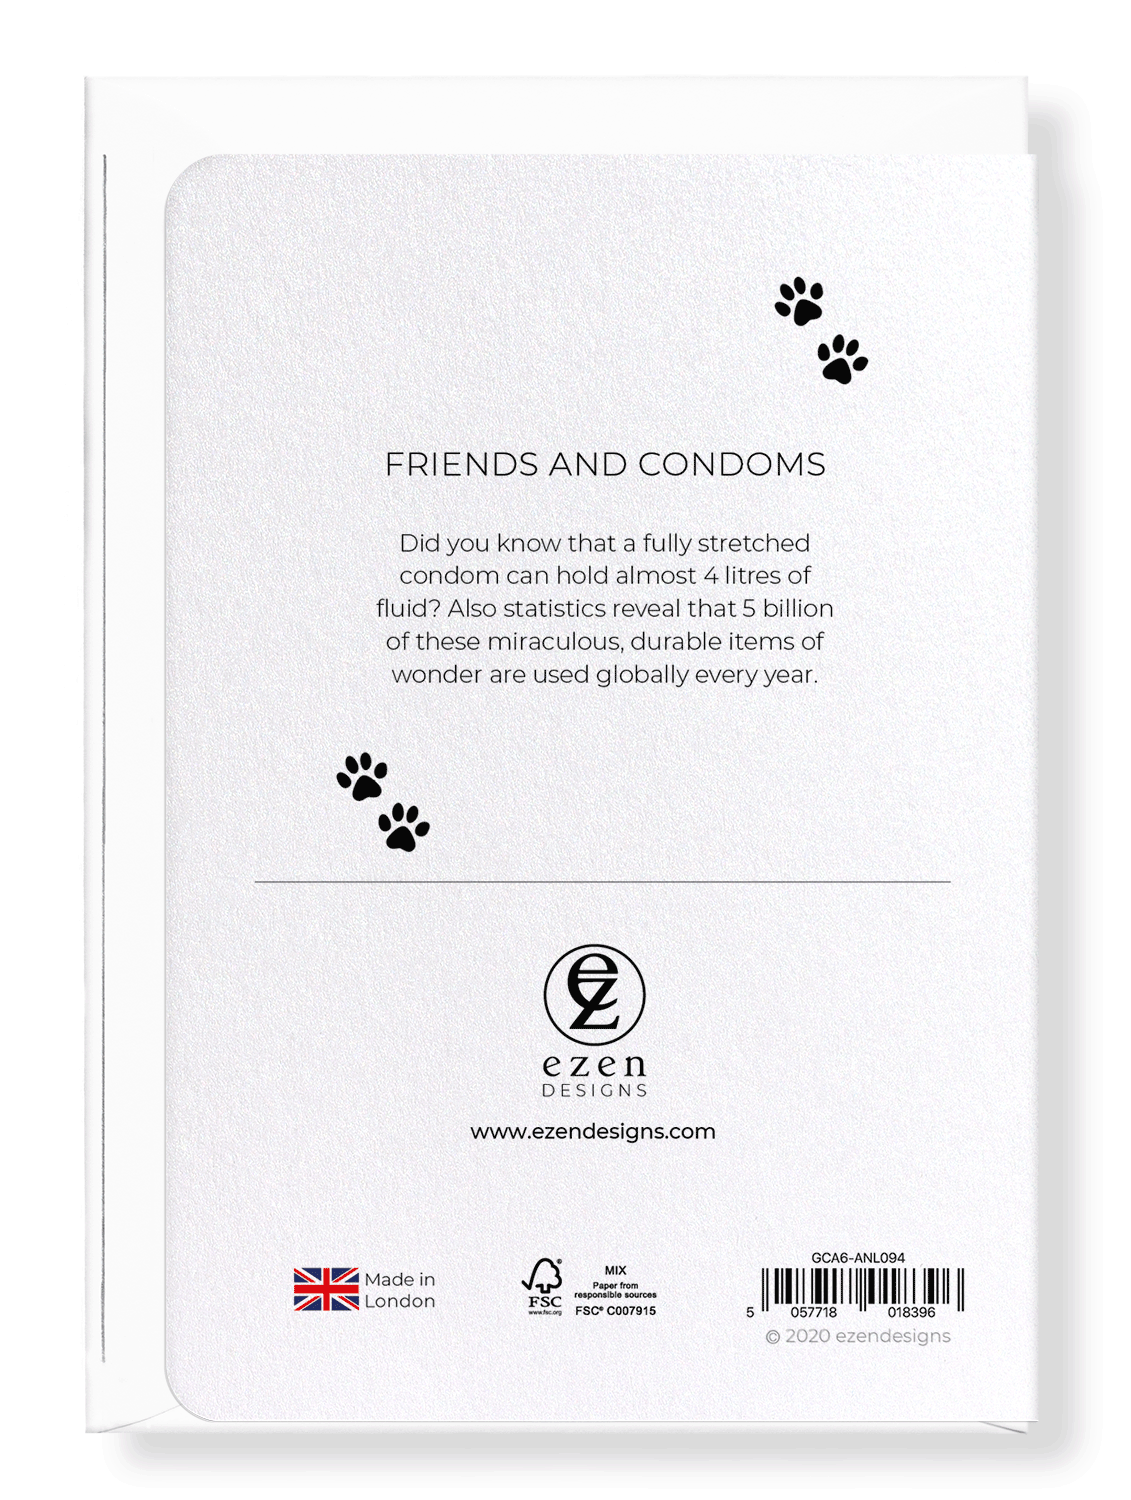 Ezen Designs - Friends and condoms - Greeting Card - Back